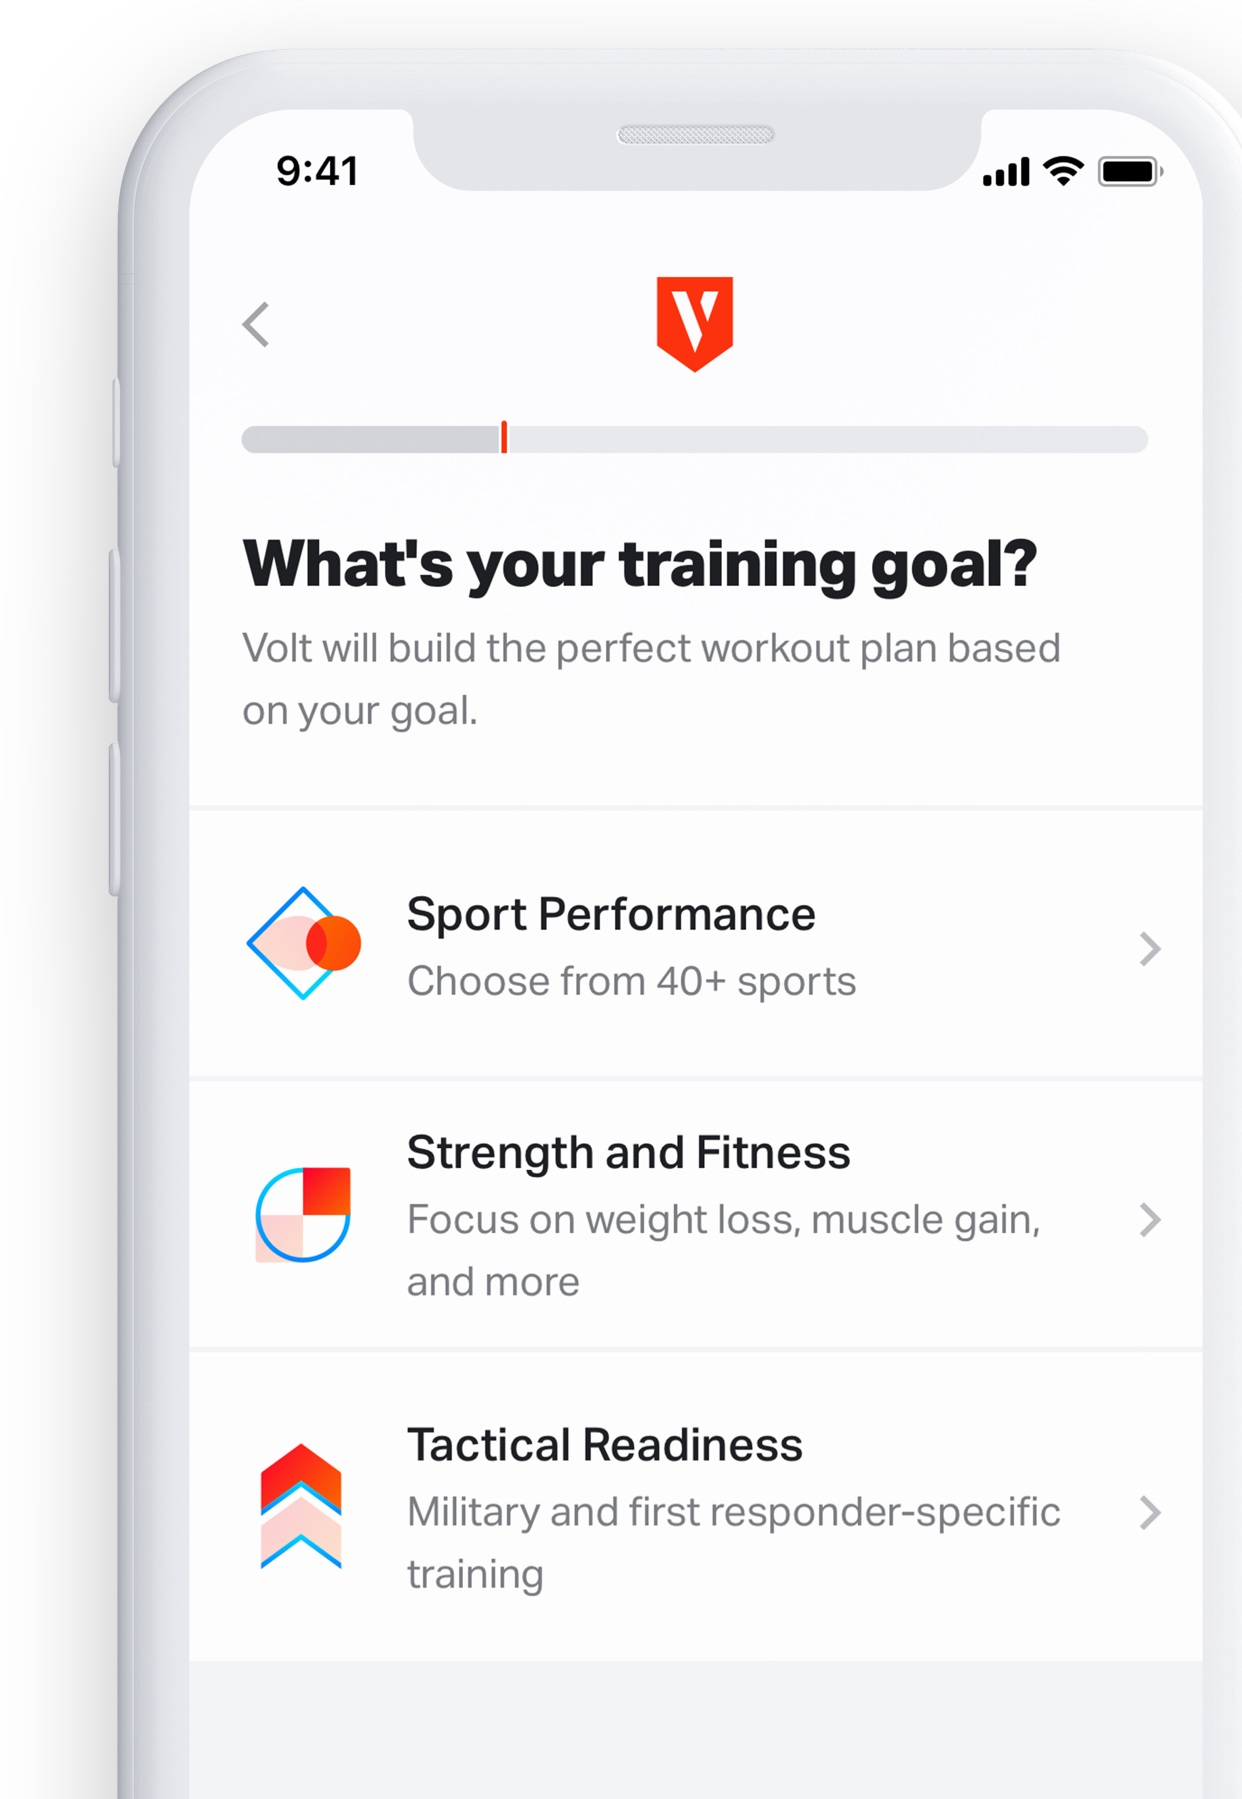 Volt's new training goals allow you to select from sport PERFORMANCE, strength and fitness, and tactical readiness depending on what your training goals are.